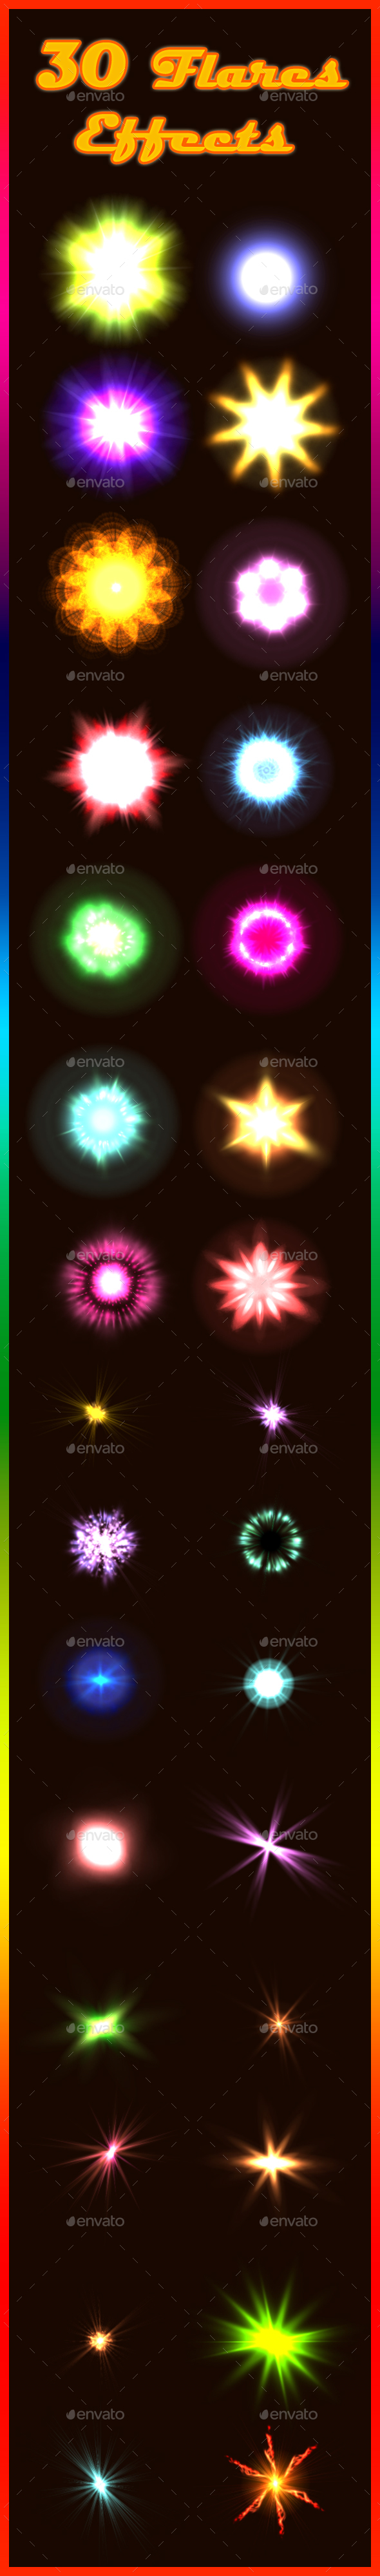 30 Flares Effects (Sprites)